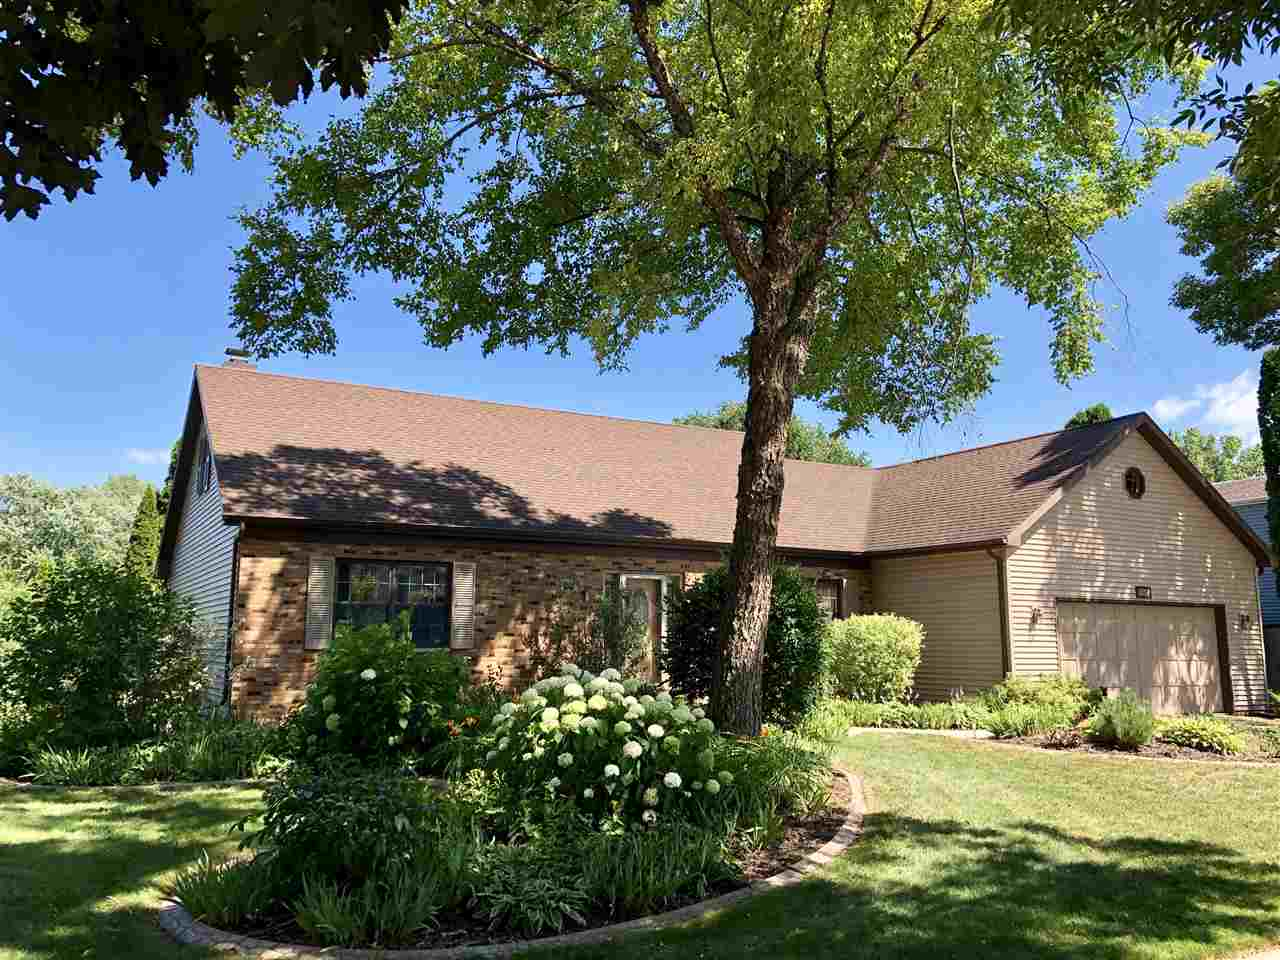 1854 CLIFFVIEW Court,OSHKOSH,Wisconsin 54901-2505,3 Bedrooms Bedrooms,3.1 BathroomsBathrooms,Residential,CLIFFVIEW,50190645